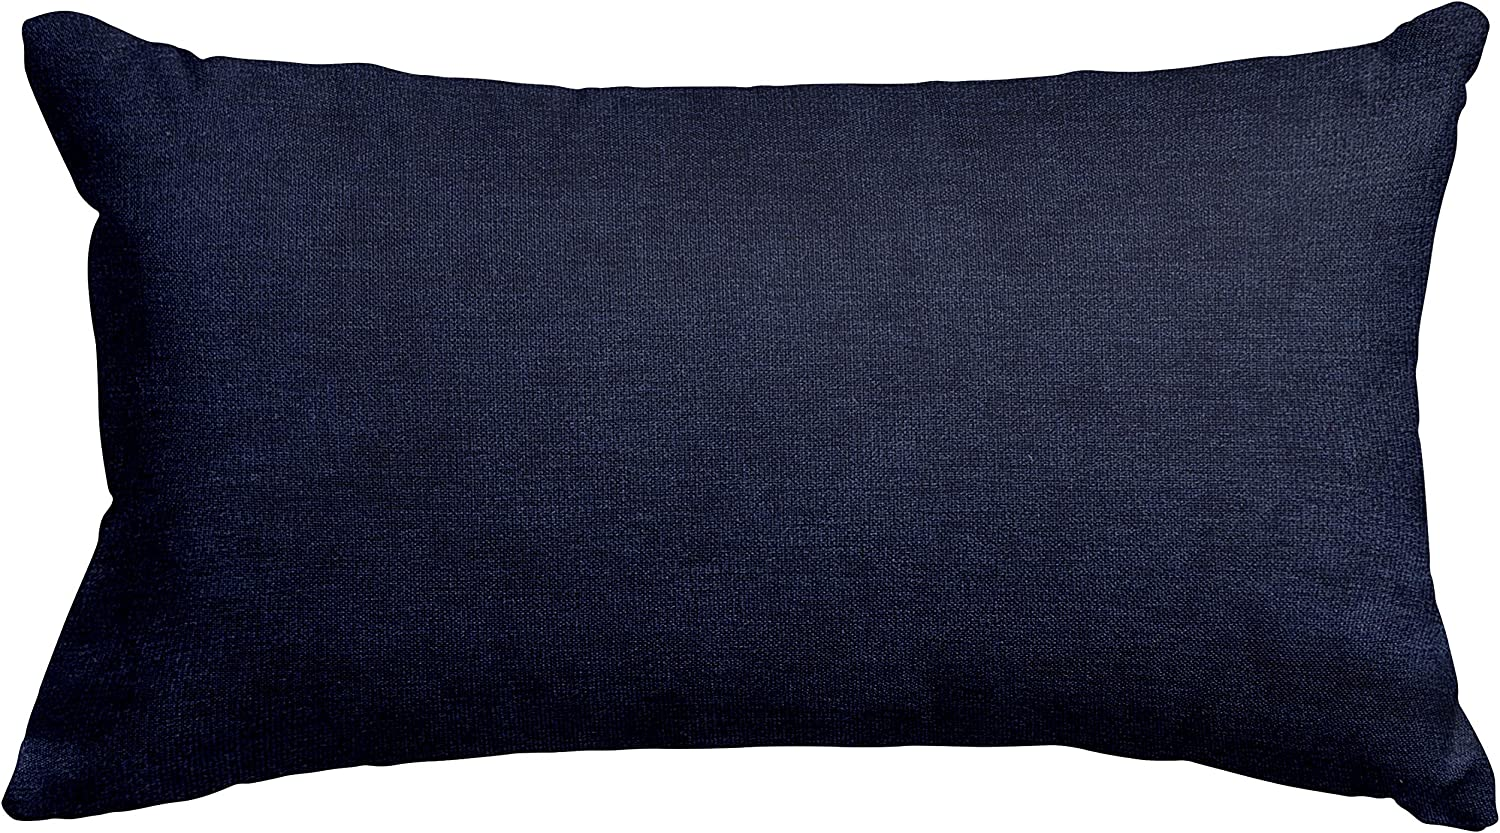 Majestic Home Goods Navy Fixed price for sale Villa Indoor L x Throw Small Pillow Popular popular 20